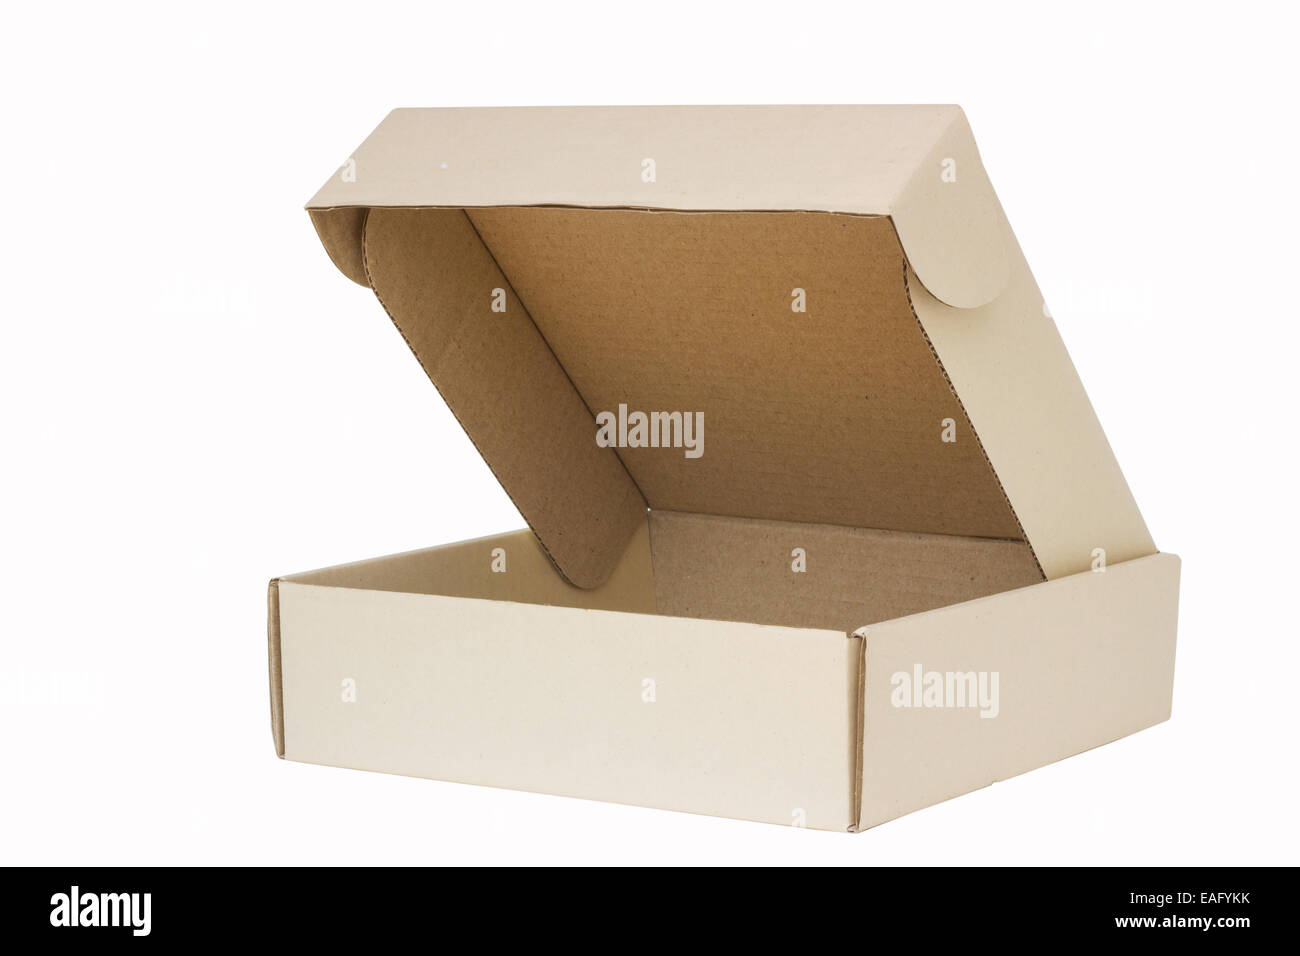 Cardboard box with flip open lid, lid open, isolated on white. - Stock Image